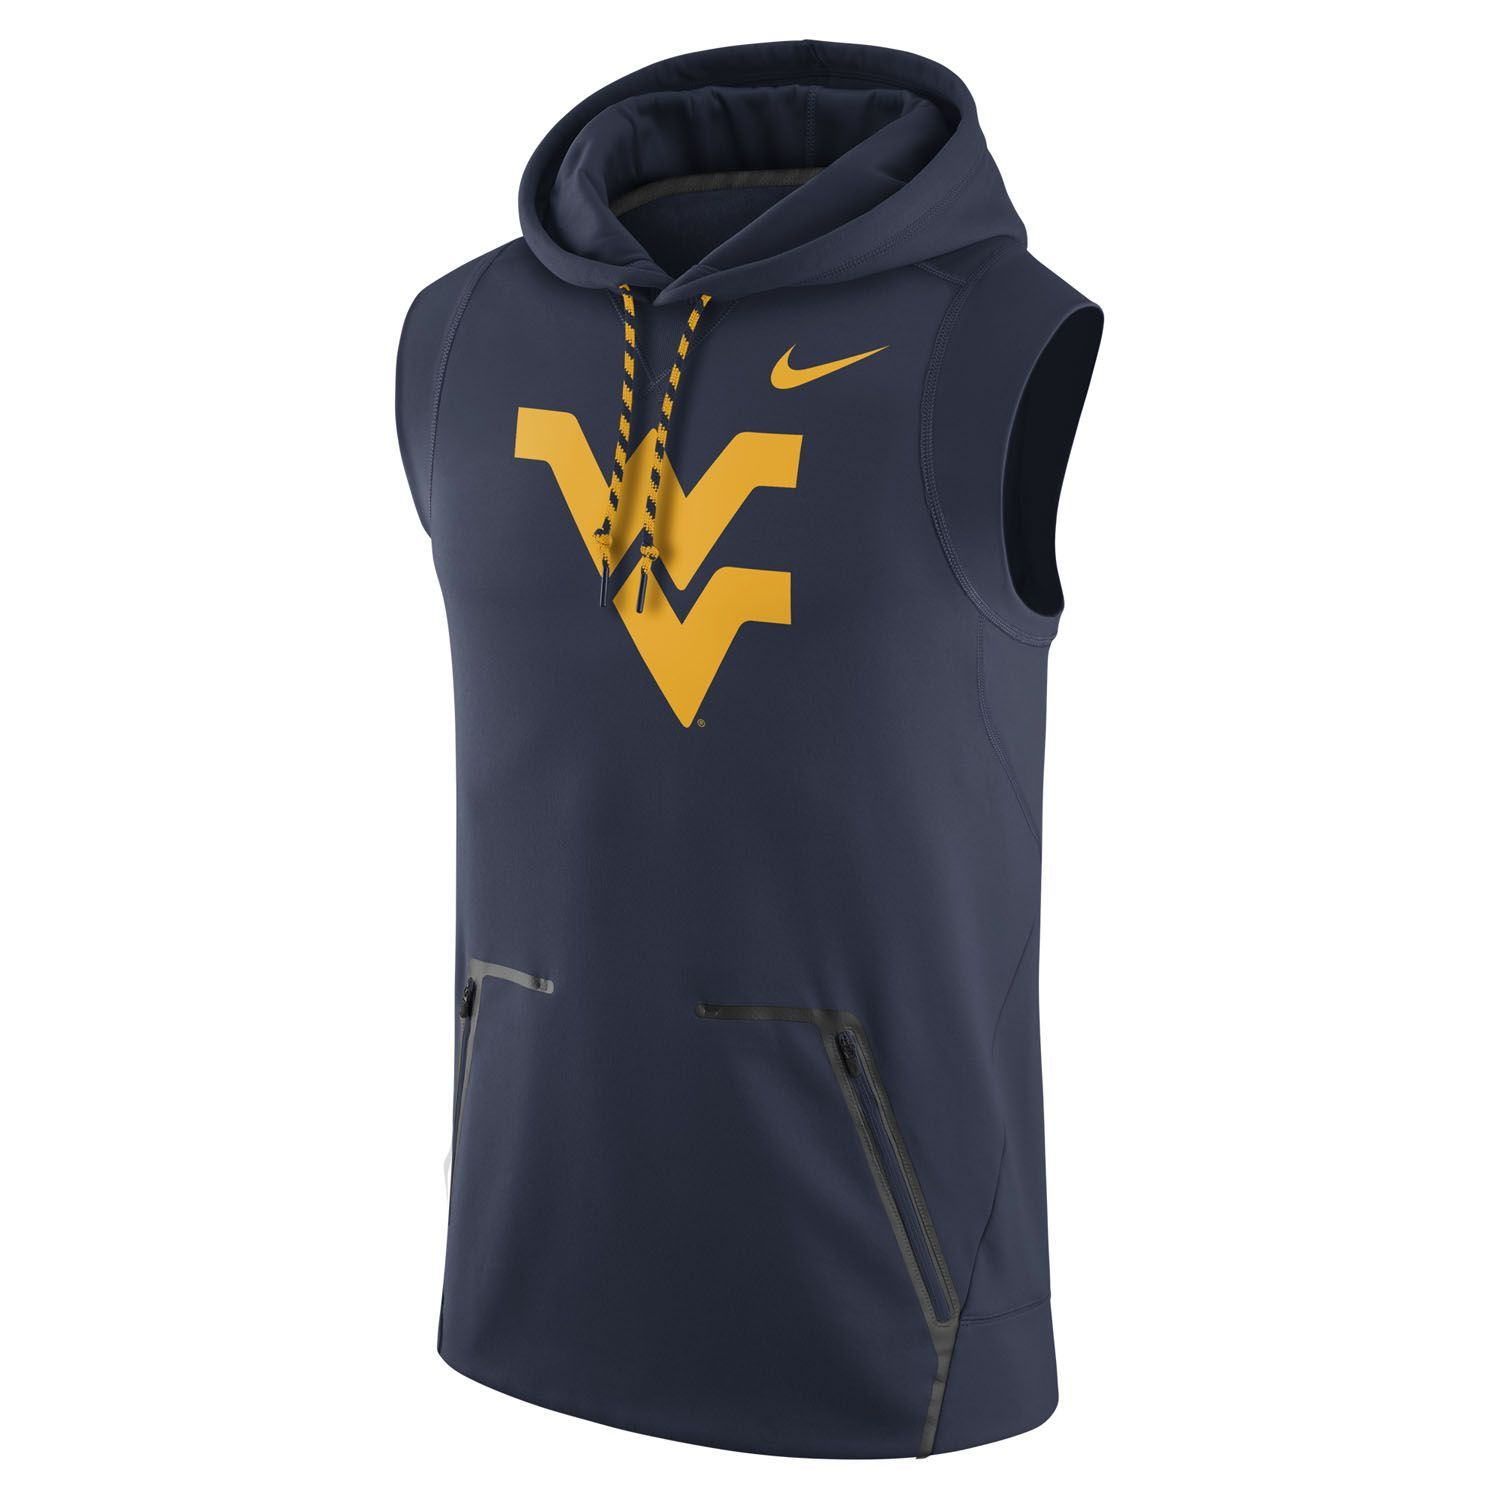 61d16d29e0cb Our Nike WVU Sleeveless Fleece Hoodie is build with the workout needs of  players and fans